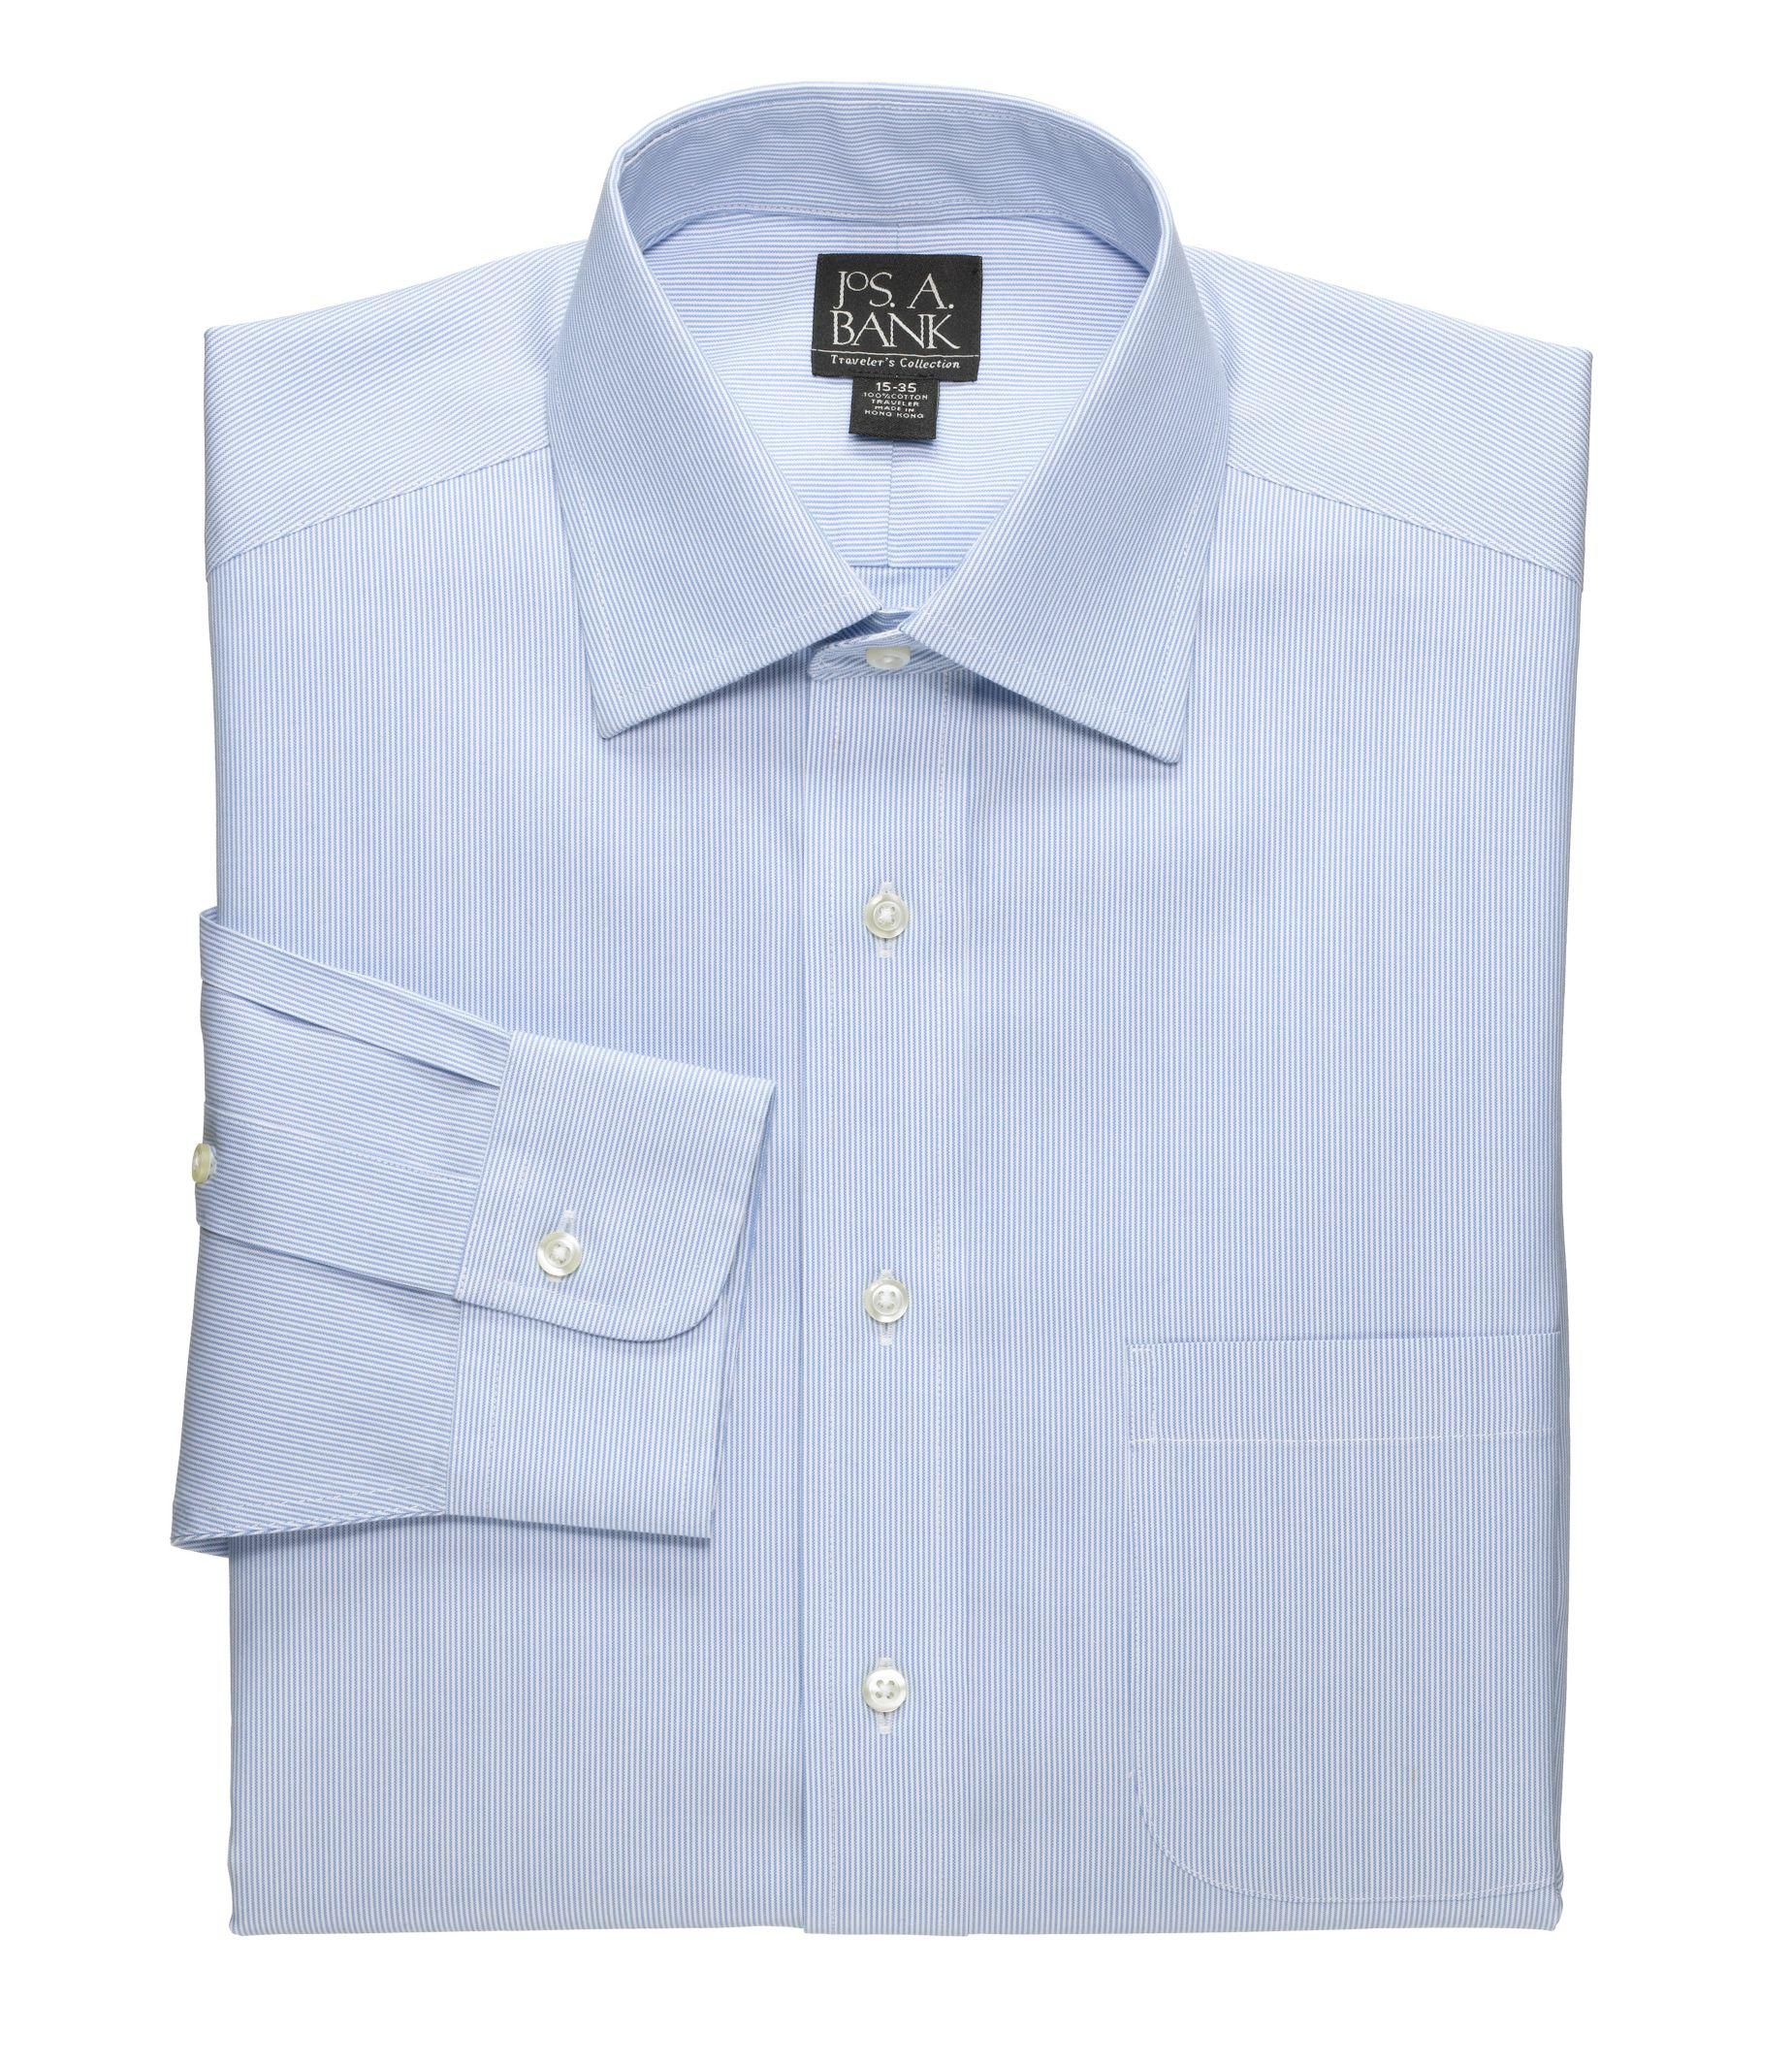 Lyst jos a bank traveller collection traditional fit for Spread collar dress shirt without tie